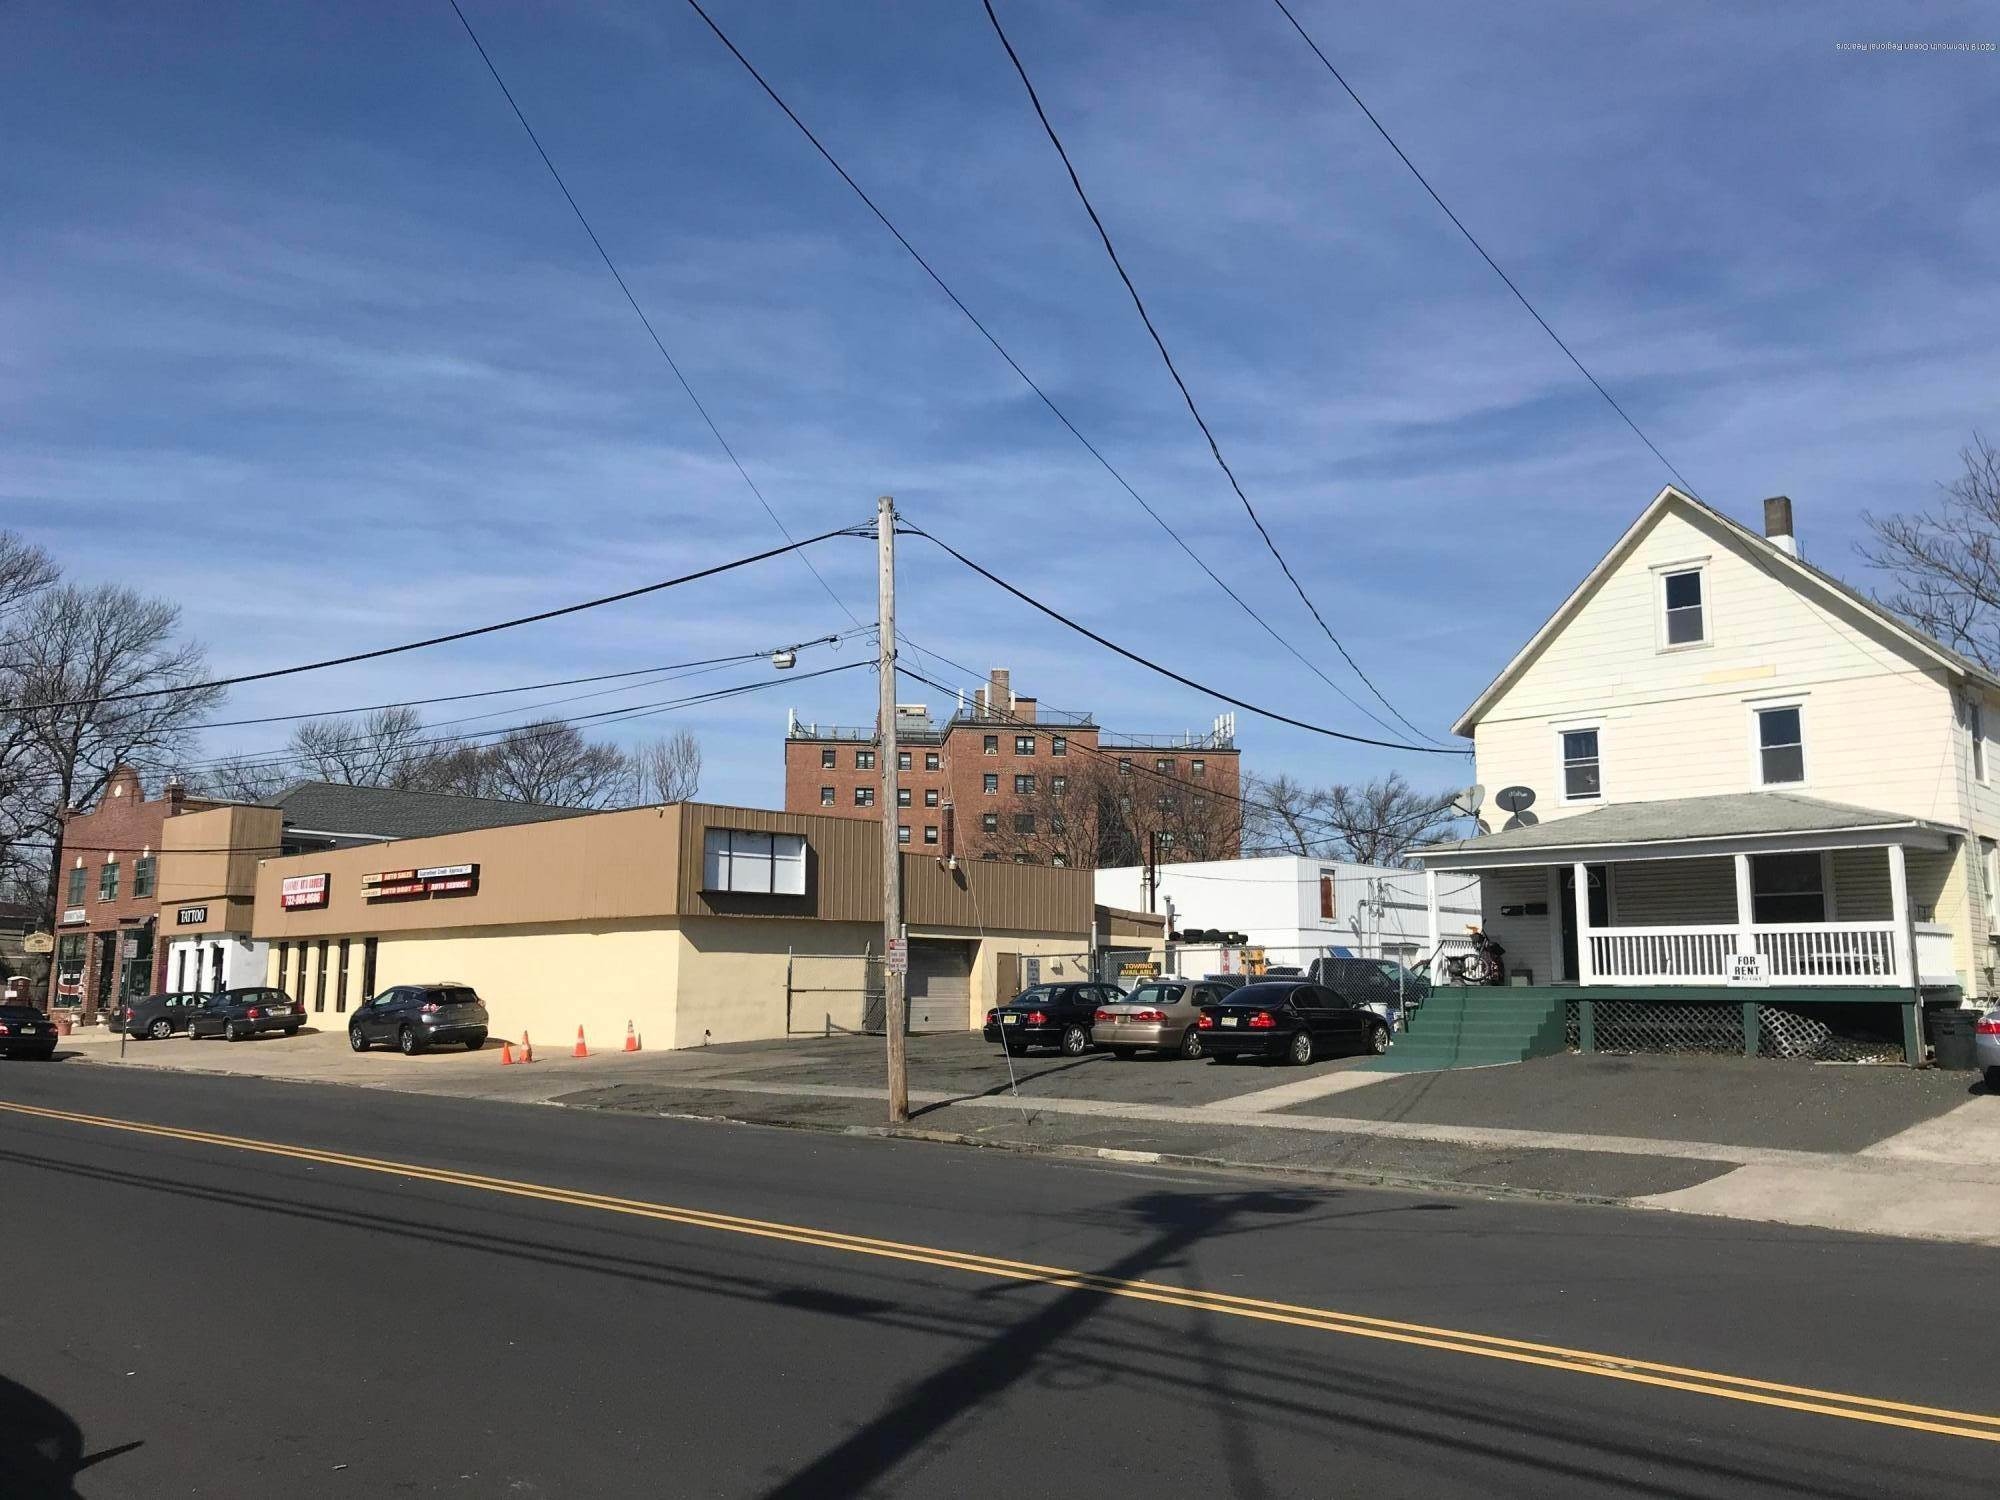 Property for Sale at 1007-1015 Asbury Avenue Asbury Park, New Jersey 07712 United States